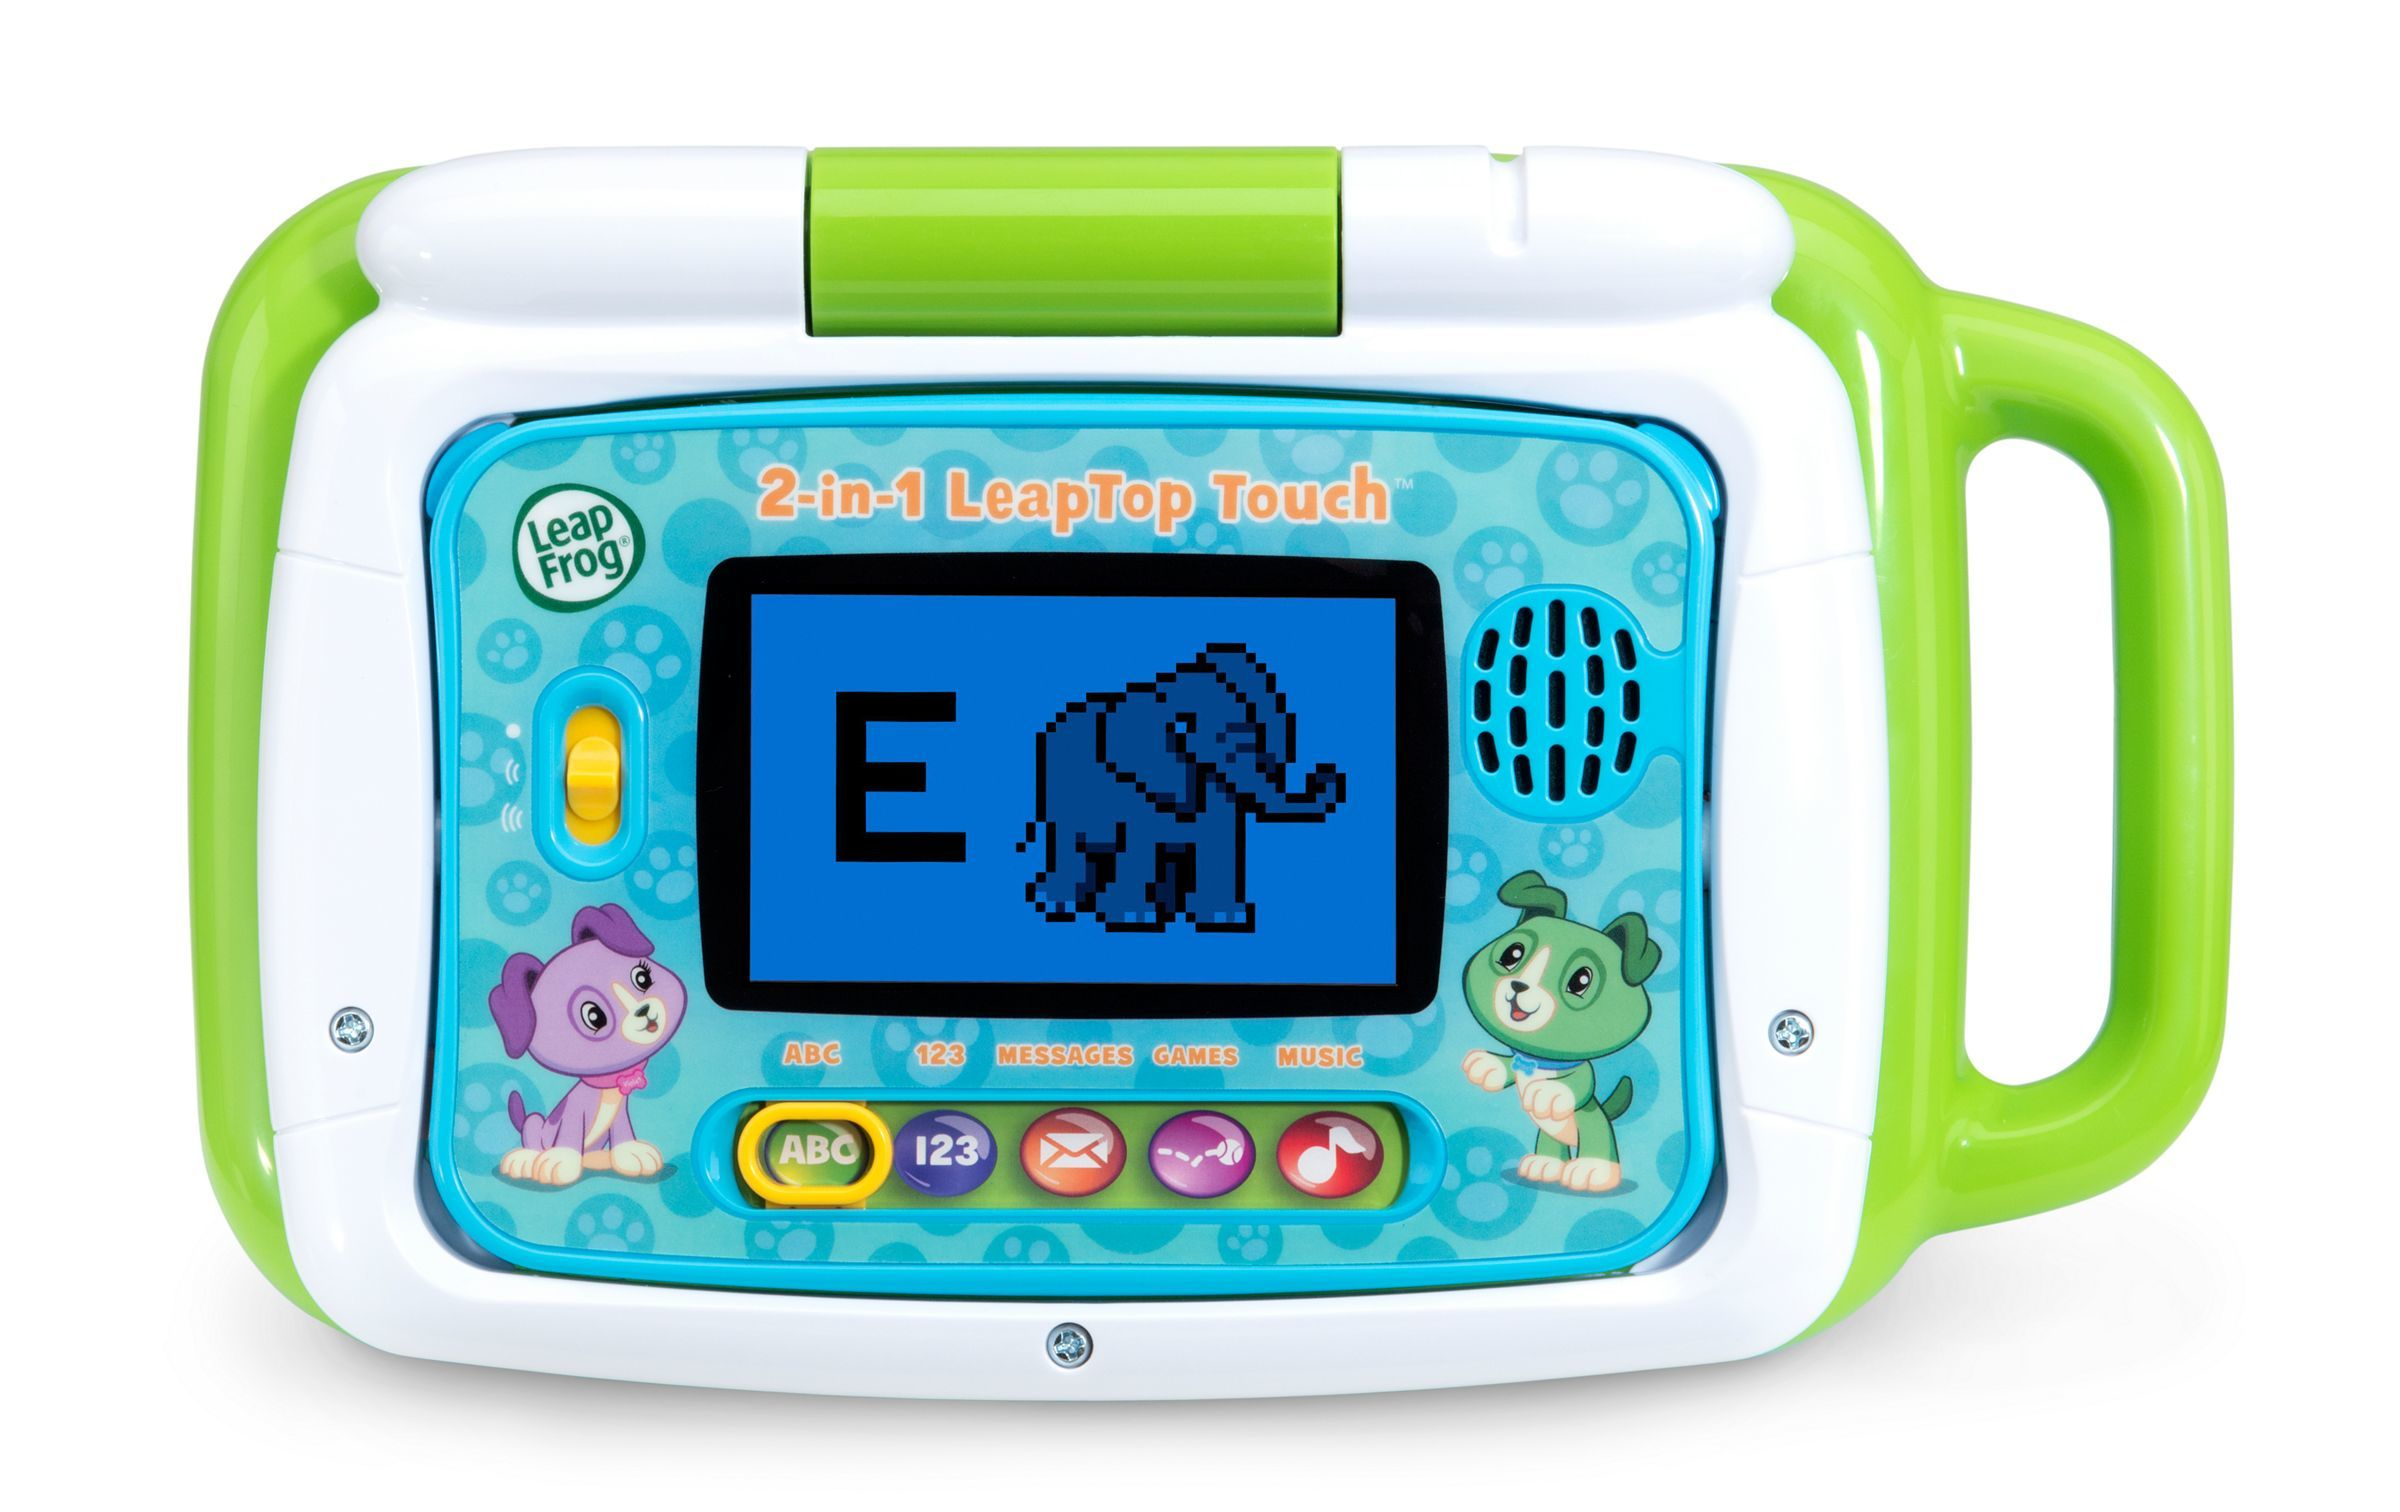 2-in-1-leaptop-touch-80-600900_1.jpg